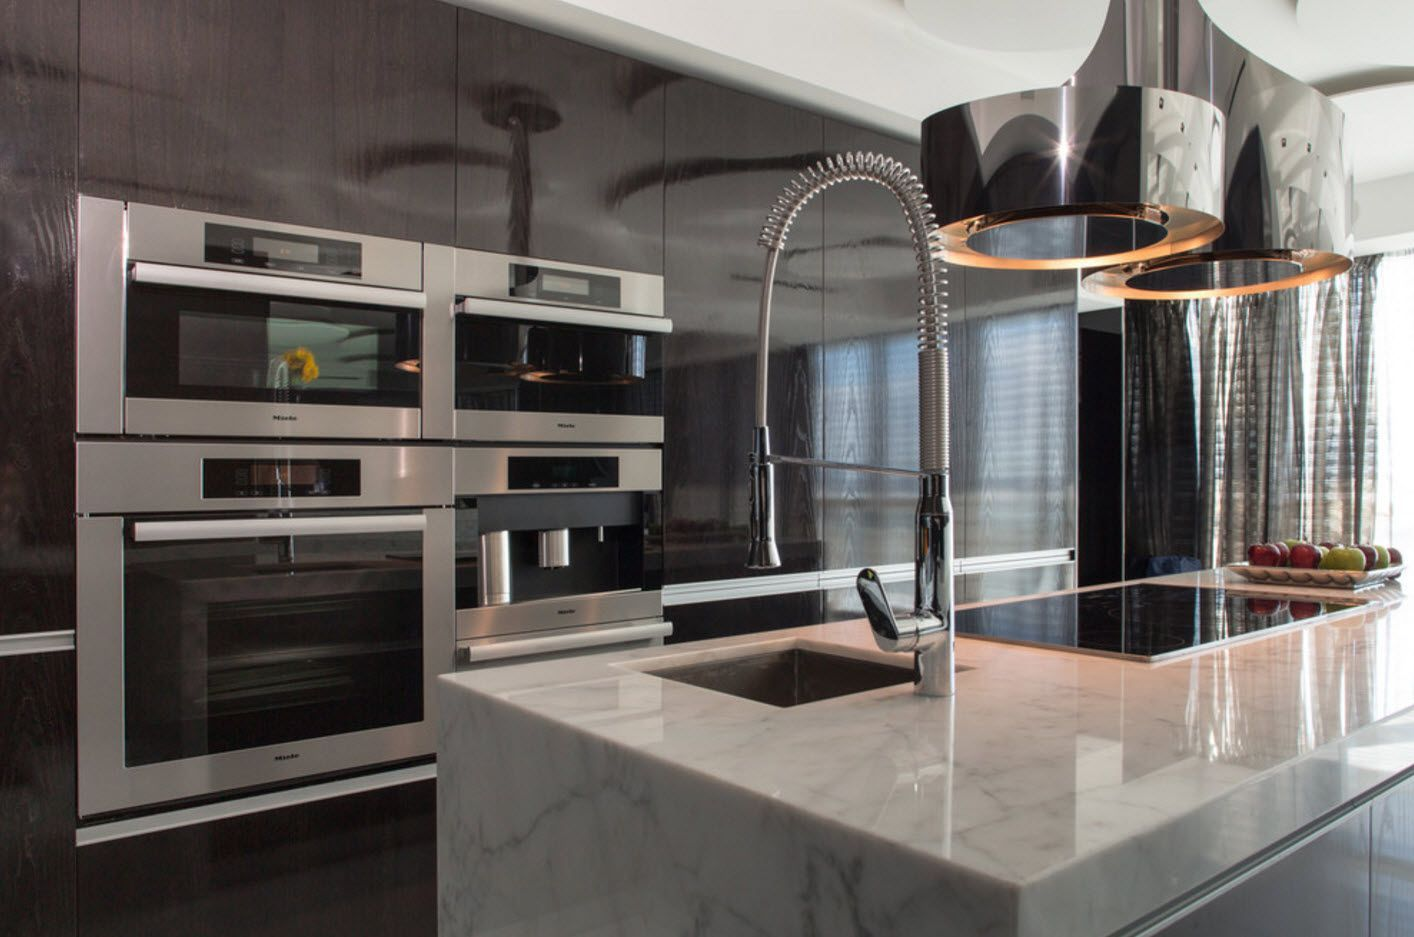 Rounded big steel tap in the modern kitchen interior with marble countertop